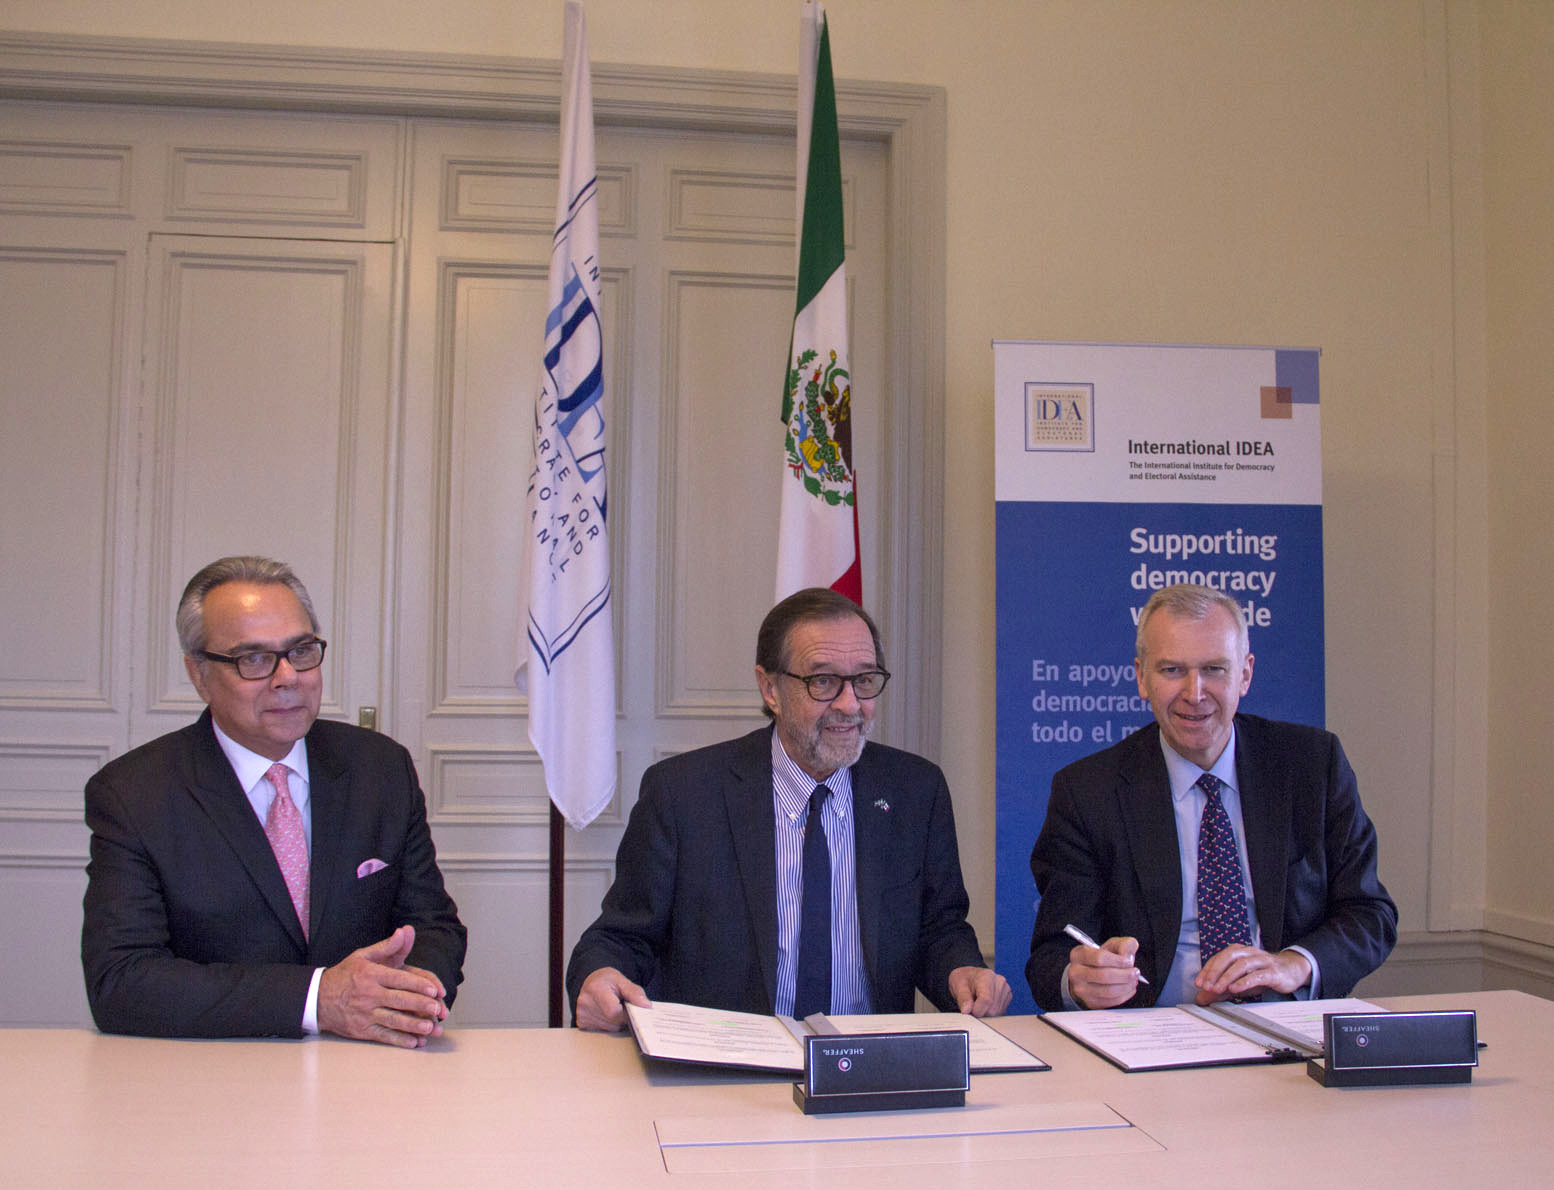 M xico e idea internacional firman acuerdo de pa s sede for Idea casa latina